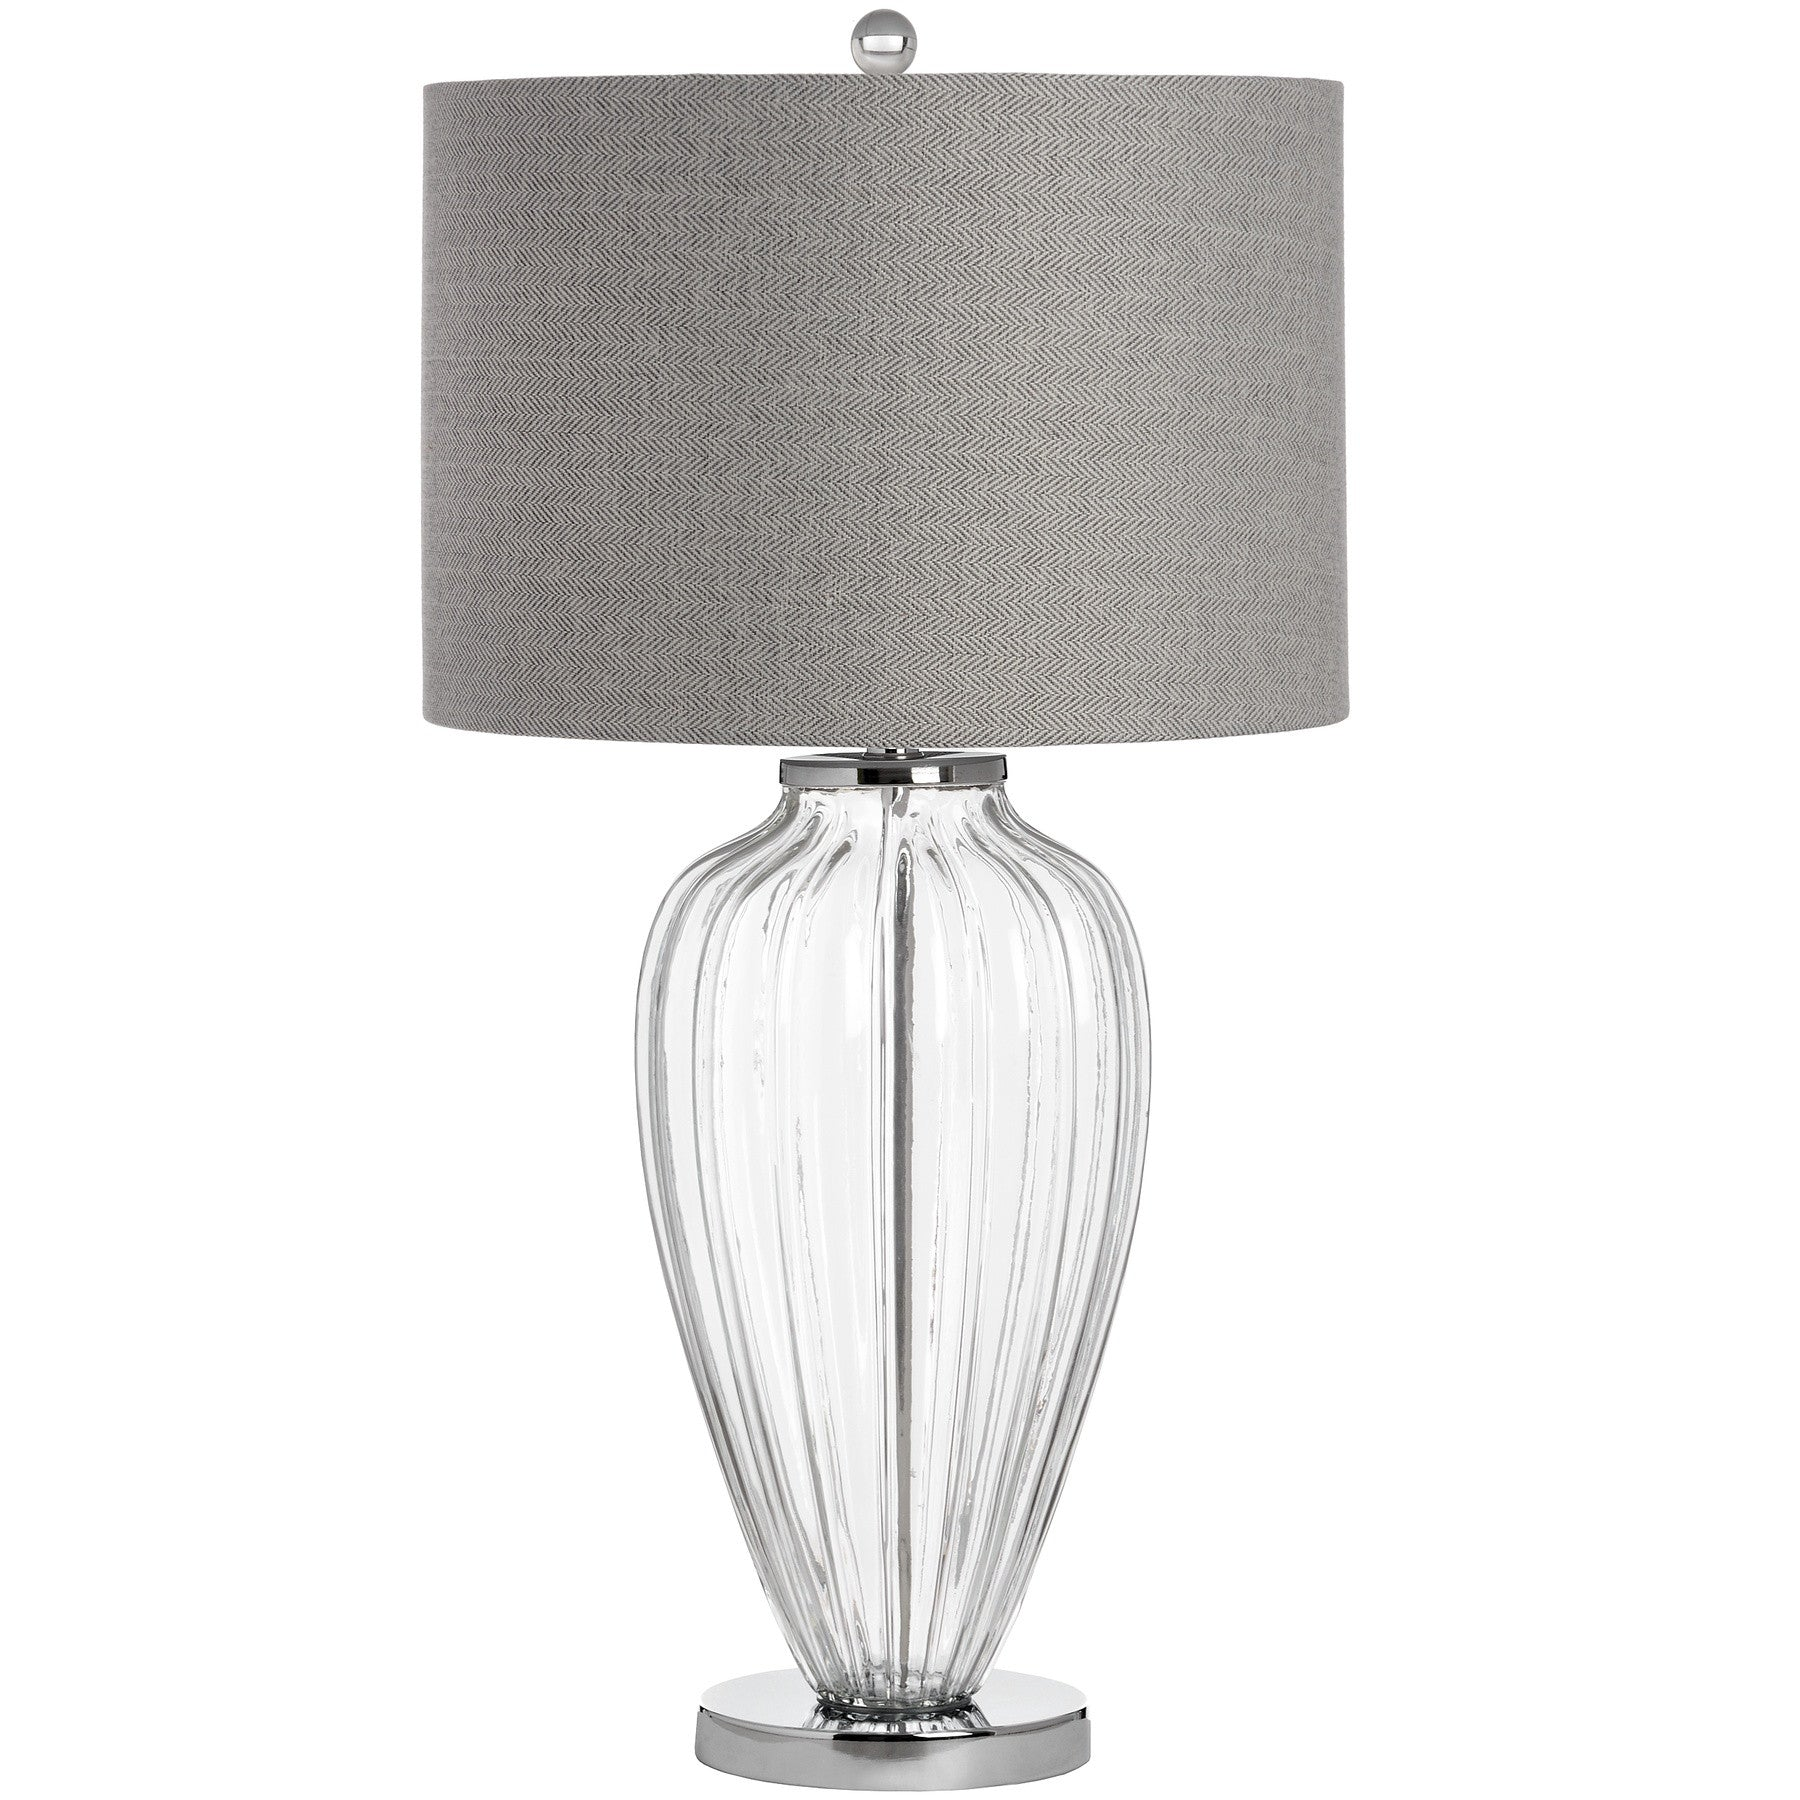 Bologna glass table lamp luxury lighting chosen by jessica clear inline light switch large glass table lamp modern chrome base and contemporary grey light shade mozeypictures Gallery